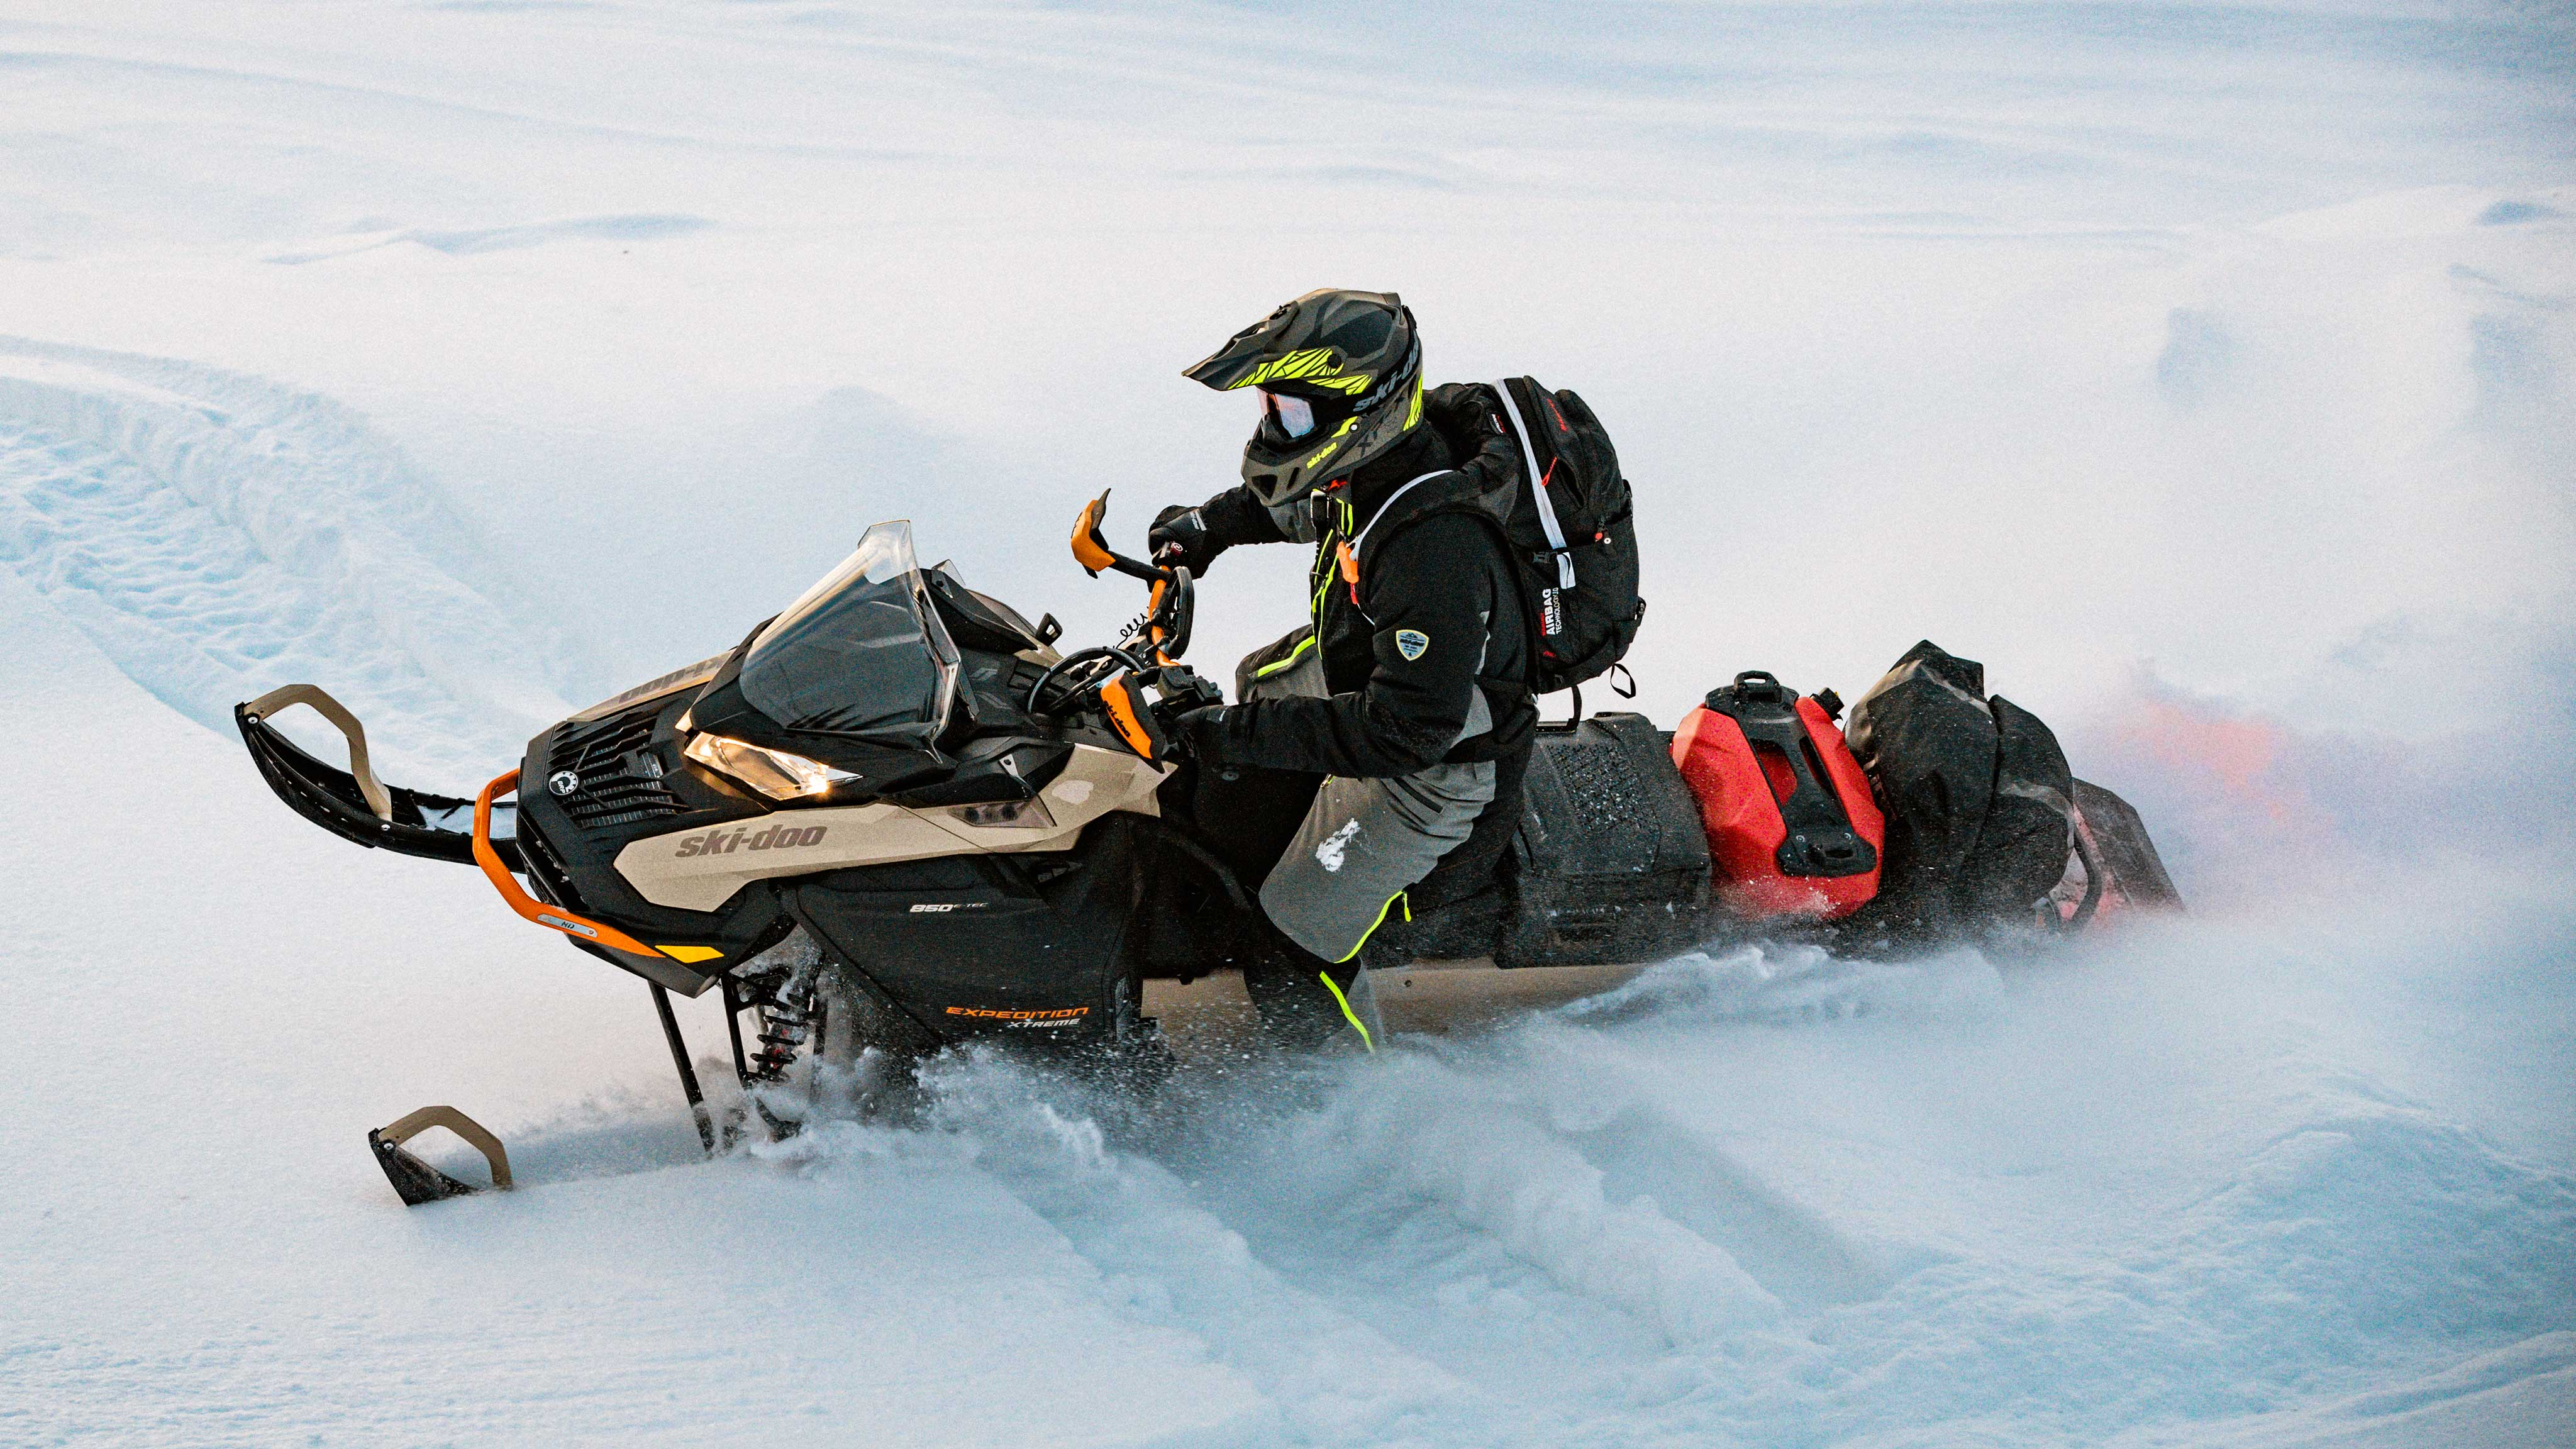 Man driving Ski-Doo Expedition in deep snow